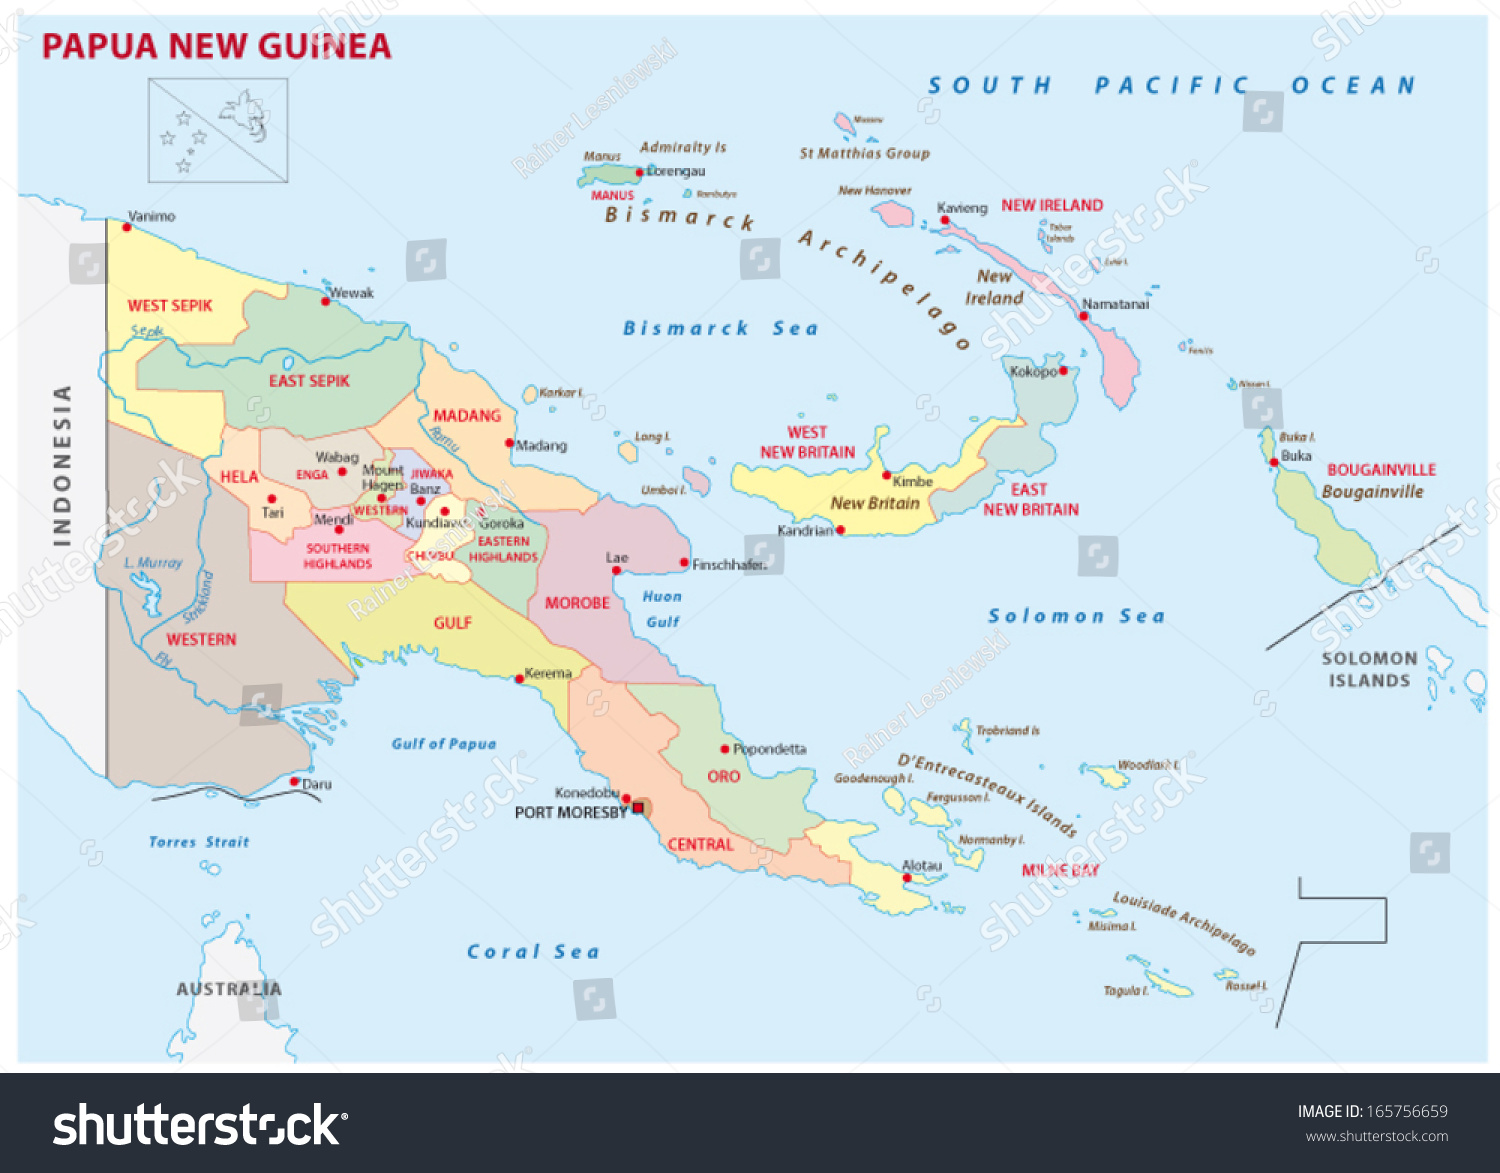 Papua New Guinea Administrative Map Stock Vector (Royalty Free ...